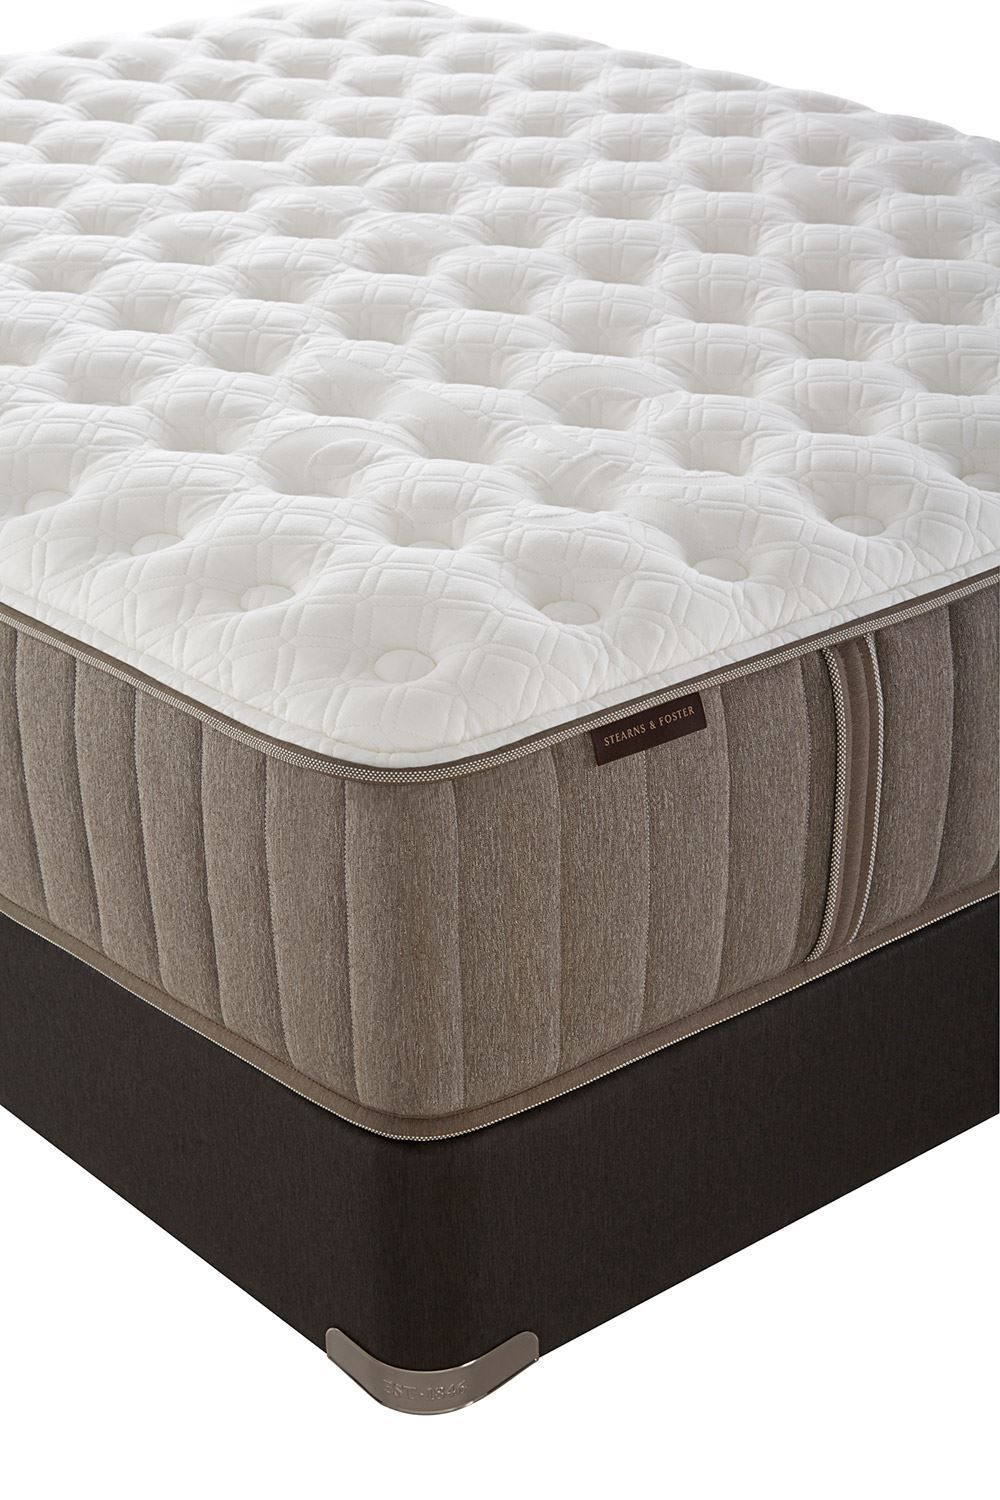 Picture of Stearns & Foster Scarborough Plush Pillowtop King Flat Low Profile Foundation Set